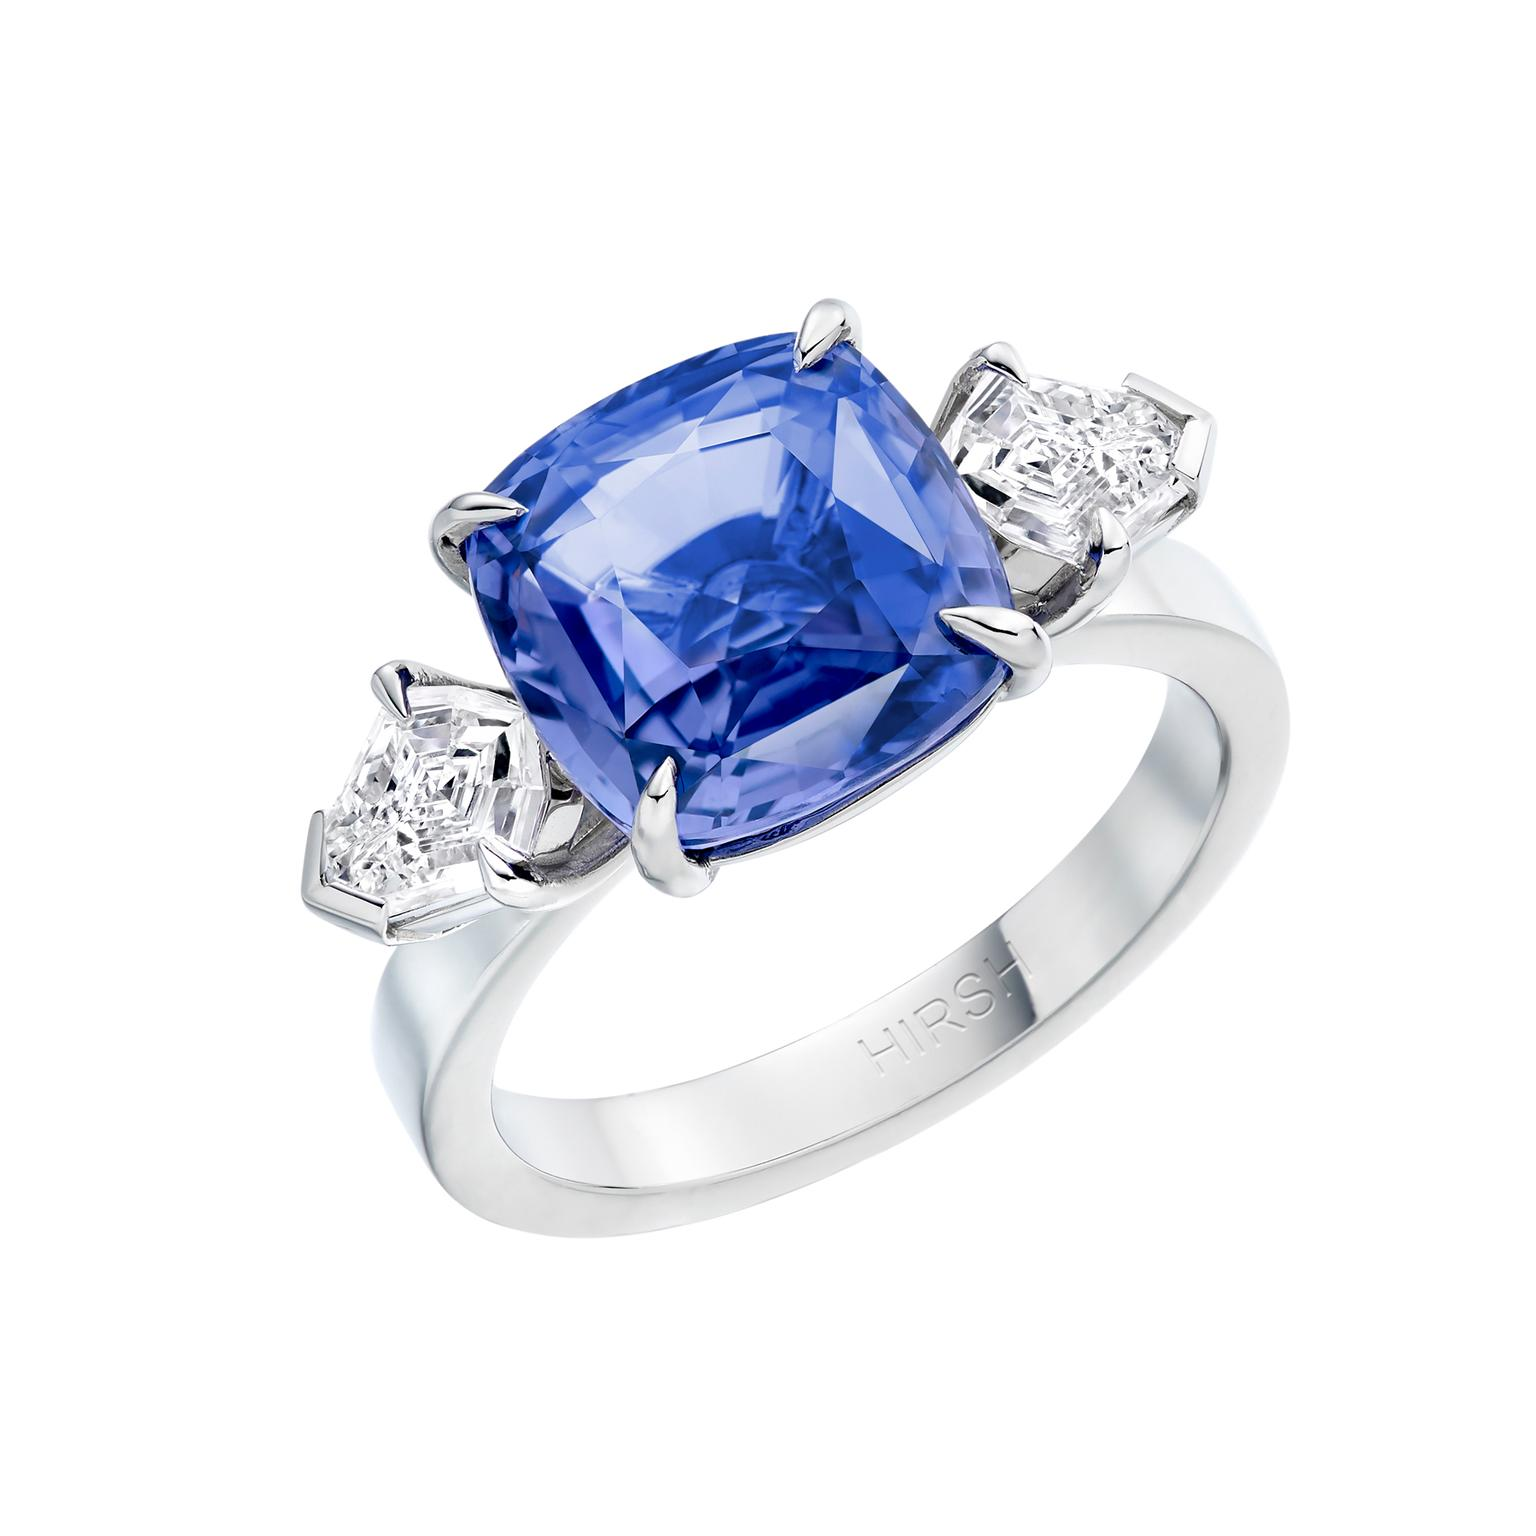 malcolm products sapphire ring saffire betts collectiondropcollectiondrop rings primavera gold gallery